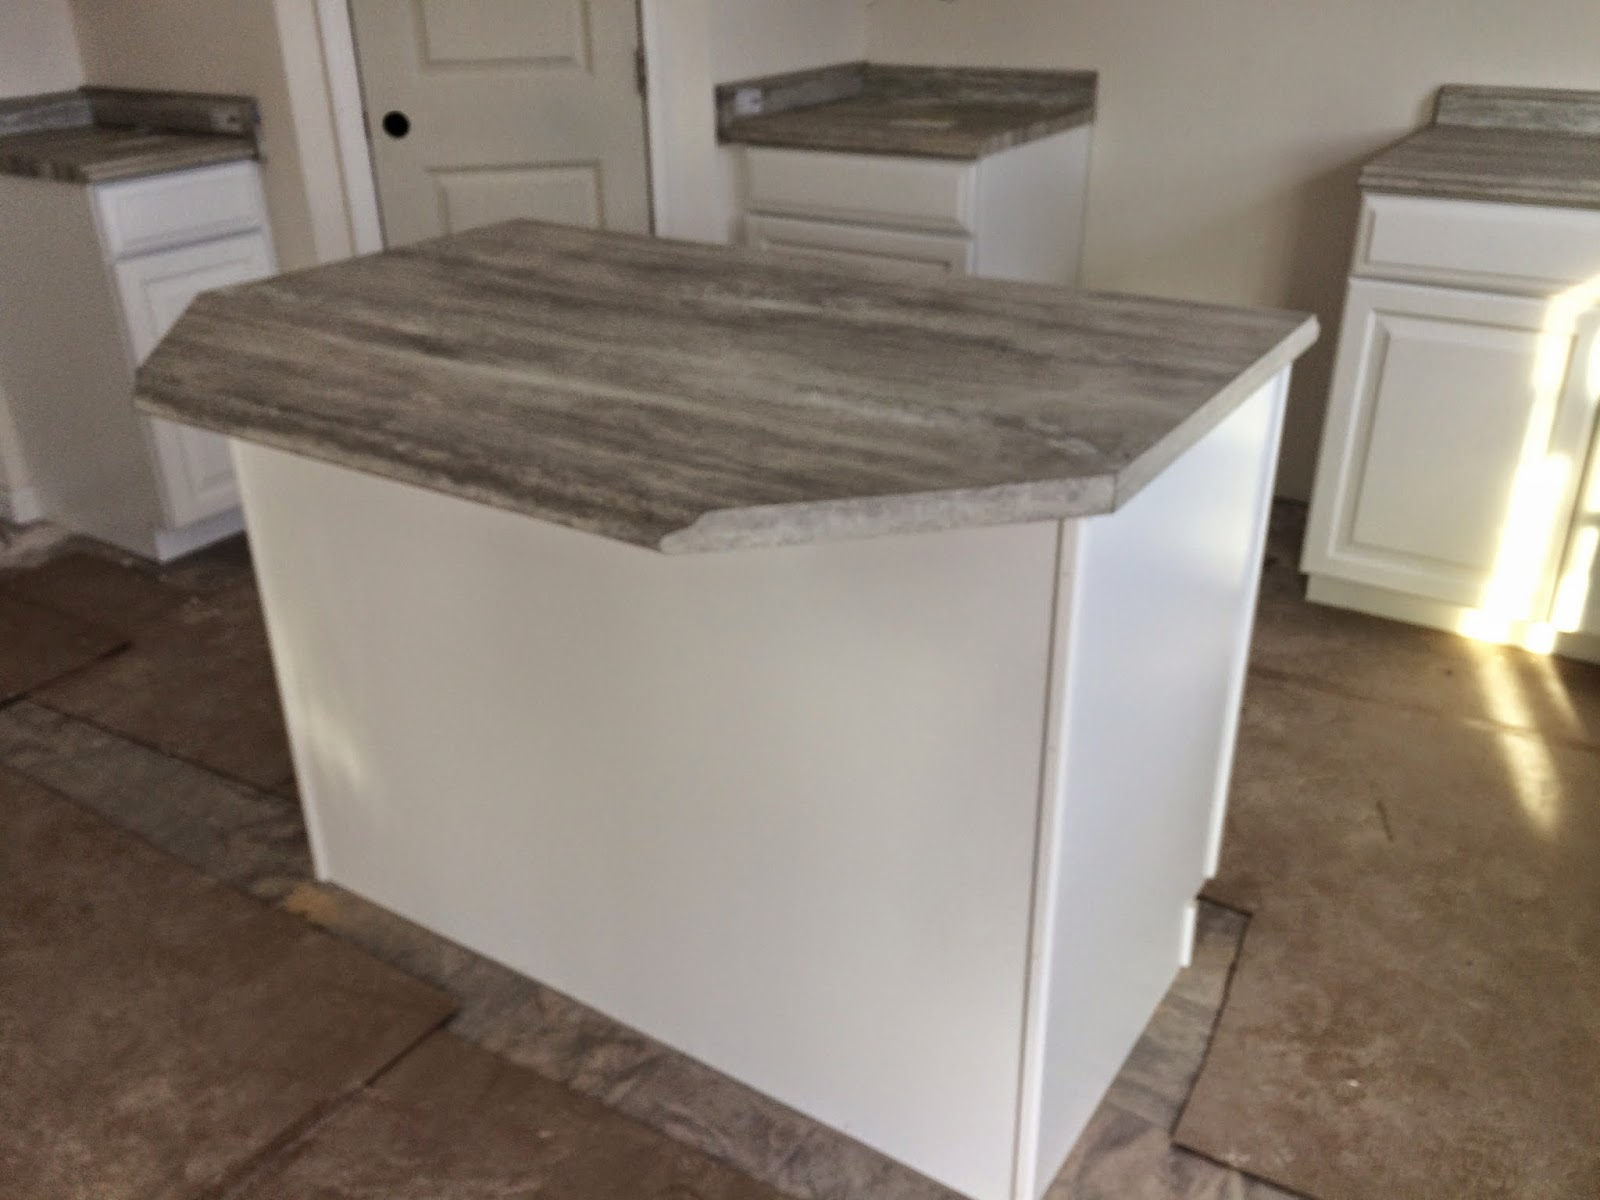 Our Fabulous Florence Cabinets Countertops Ohh My